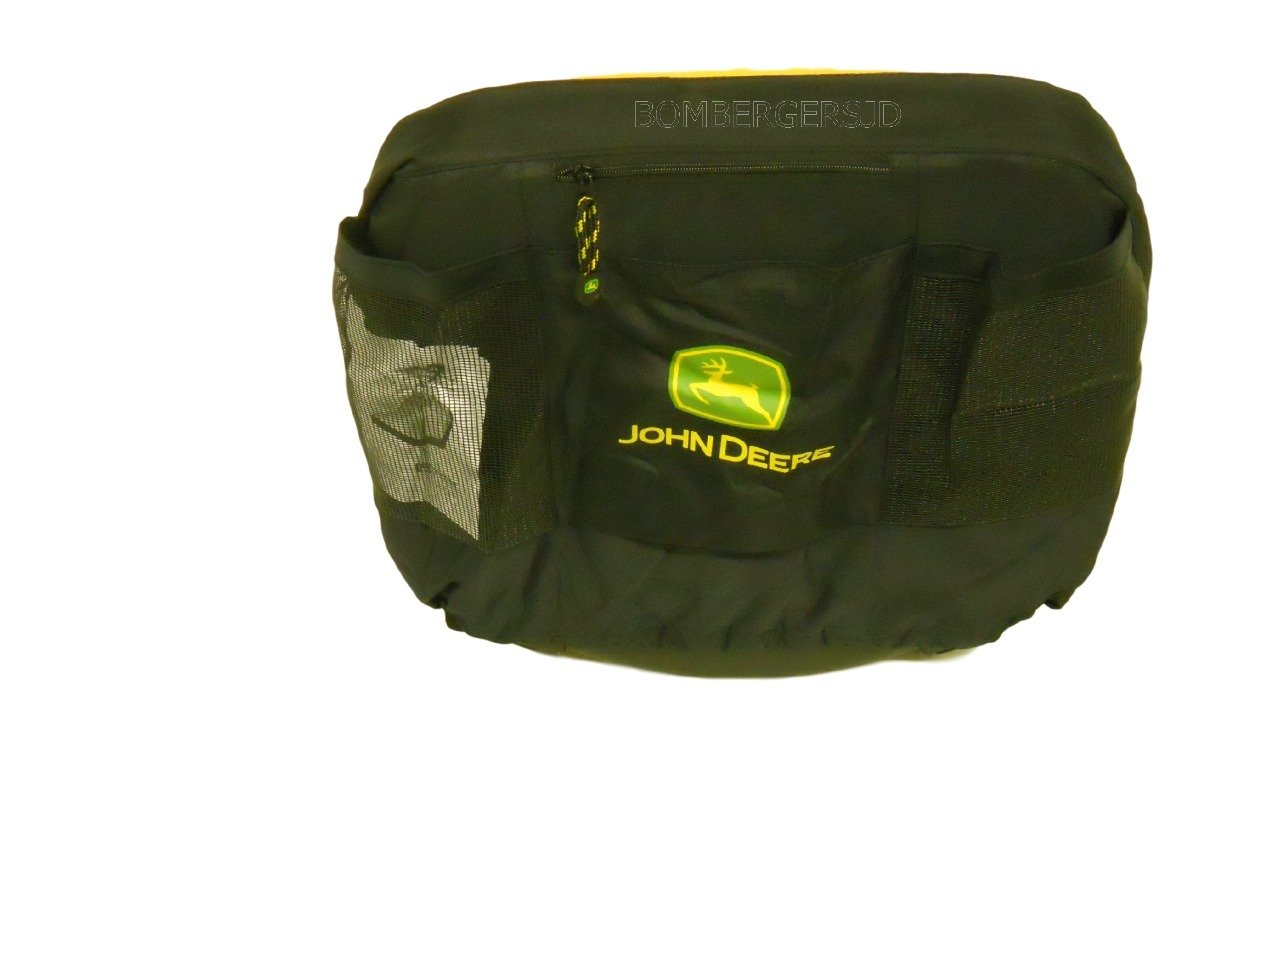 John Deere 445 Tractor Seats Replacement : John deere seat cover for lawn mower velcromag